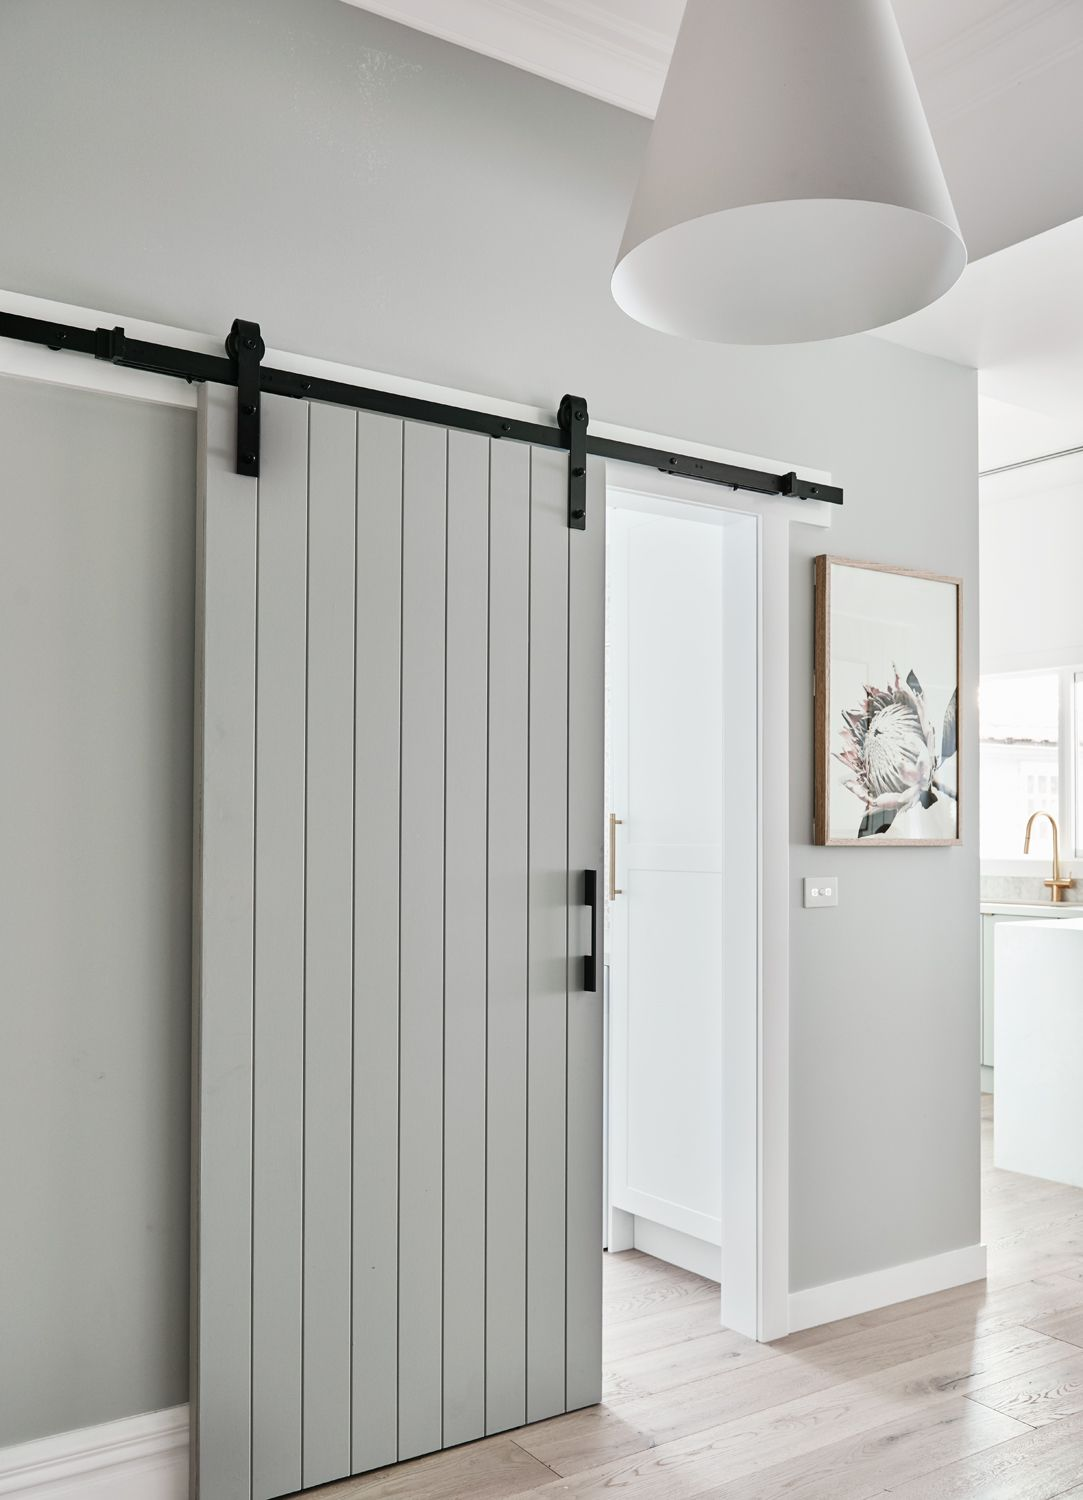 17 Design Ideas For Small Hallways In 2019 Barn Doors